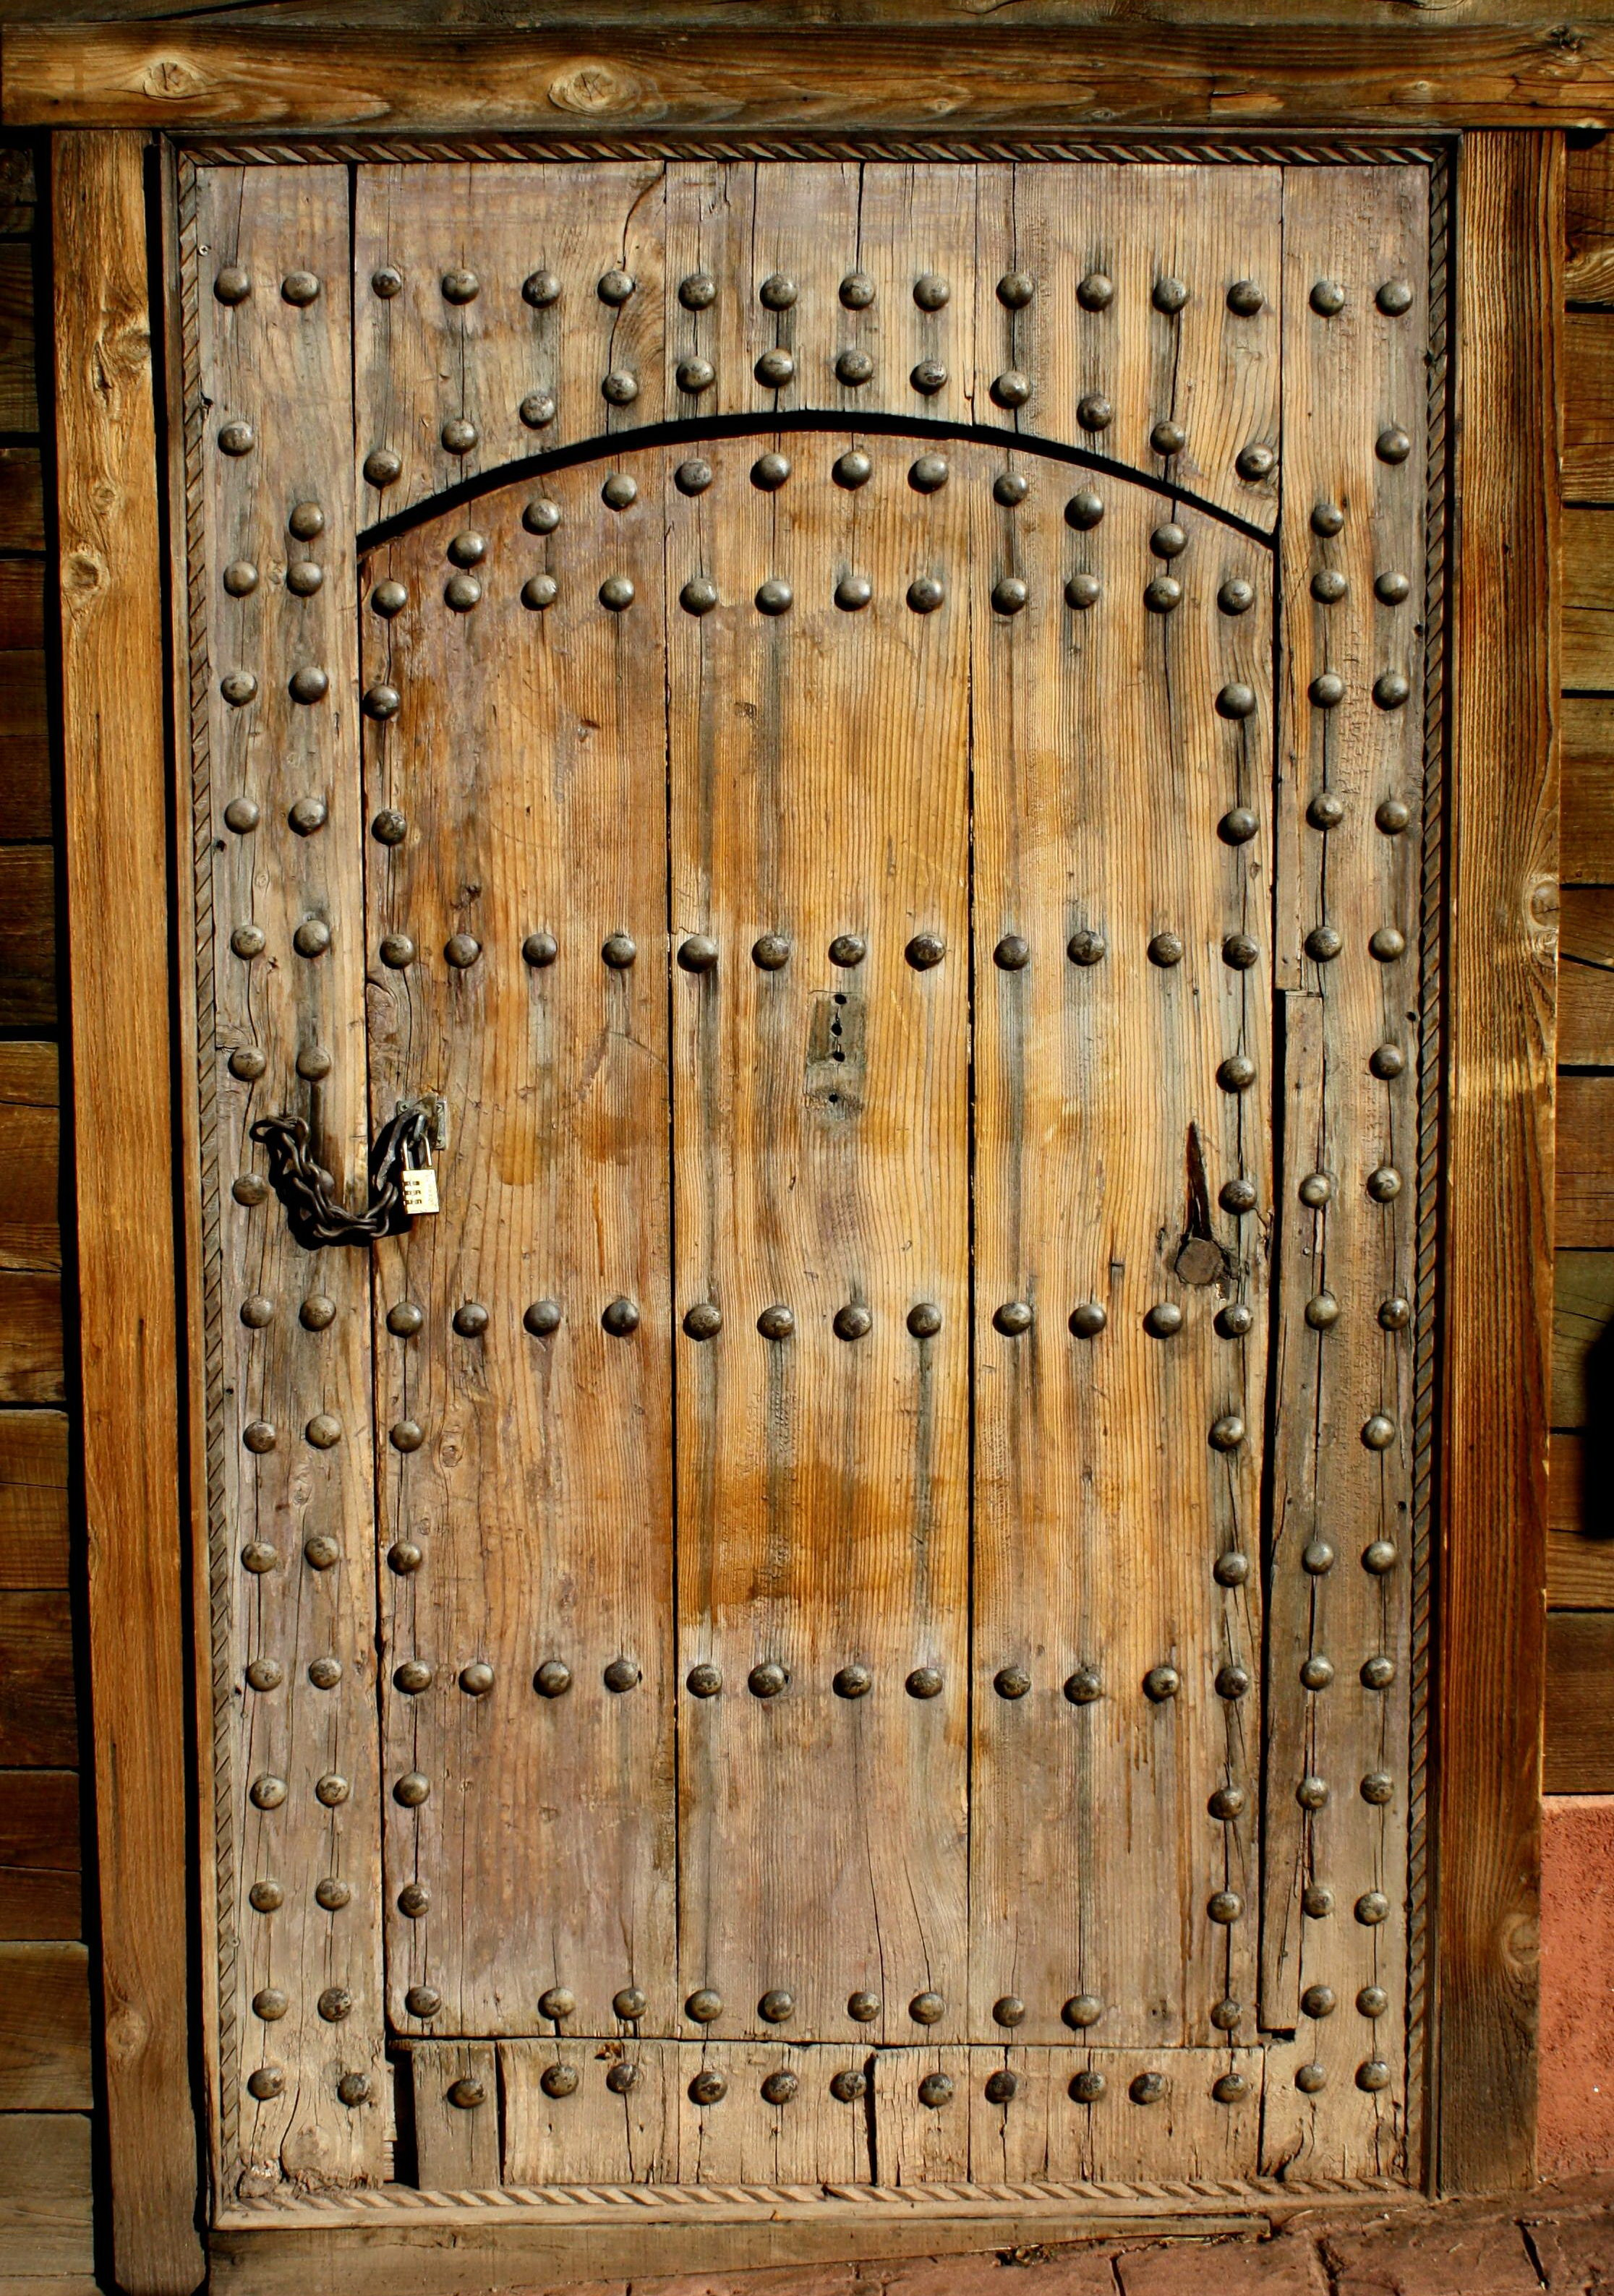 Rustic, Antique, Wooden Door, Metal Bolts, Padlock, Chain